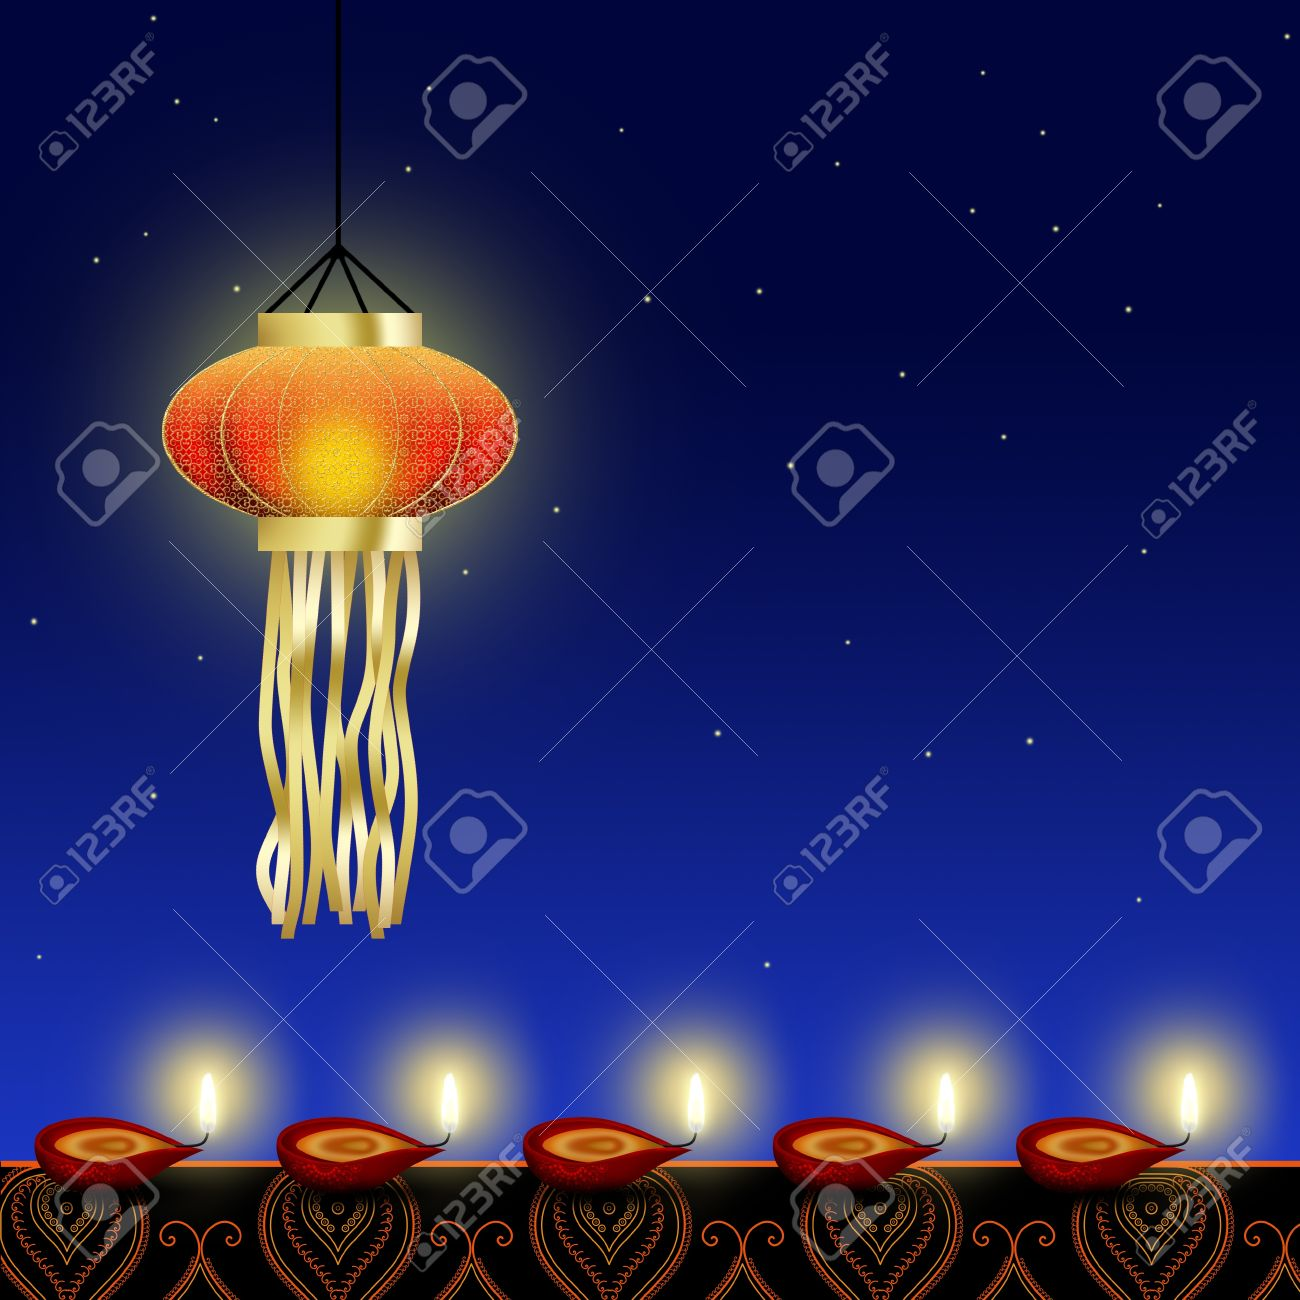 Night lamps india - Happy Diwali Illustration A Shiny Diwali Lamp With Red Diyas Cup Shaped Indian Oil Lamps